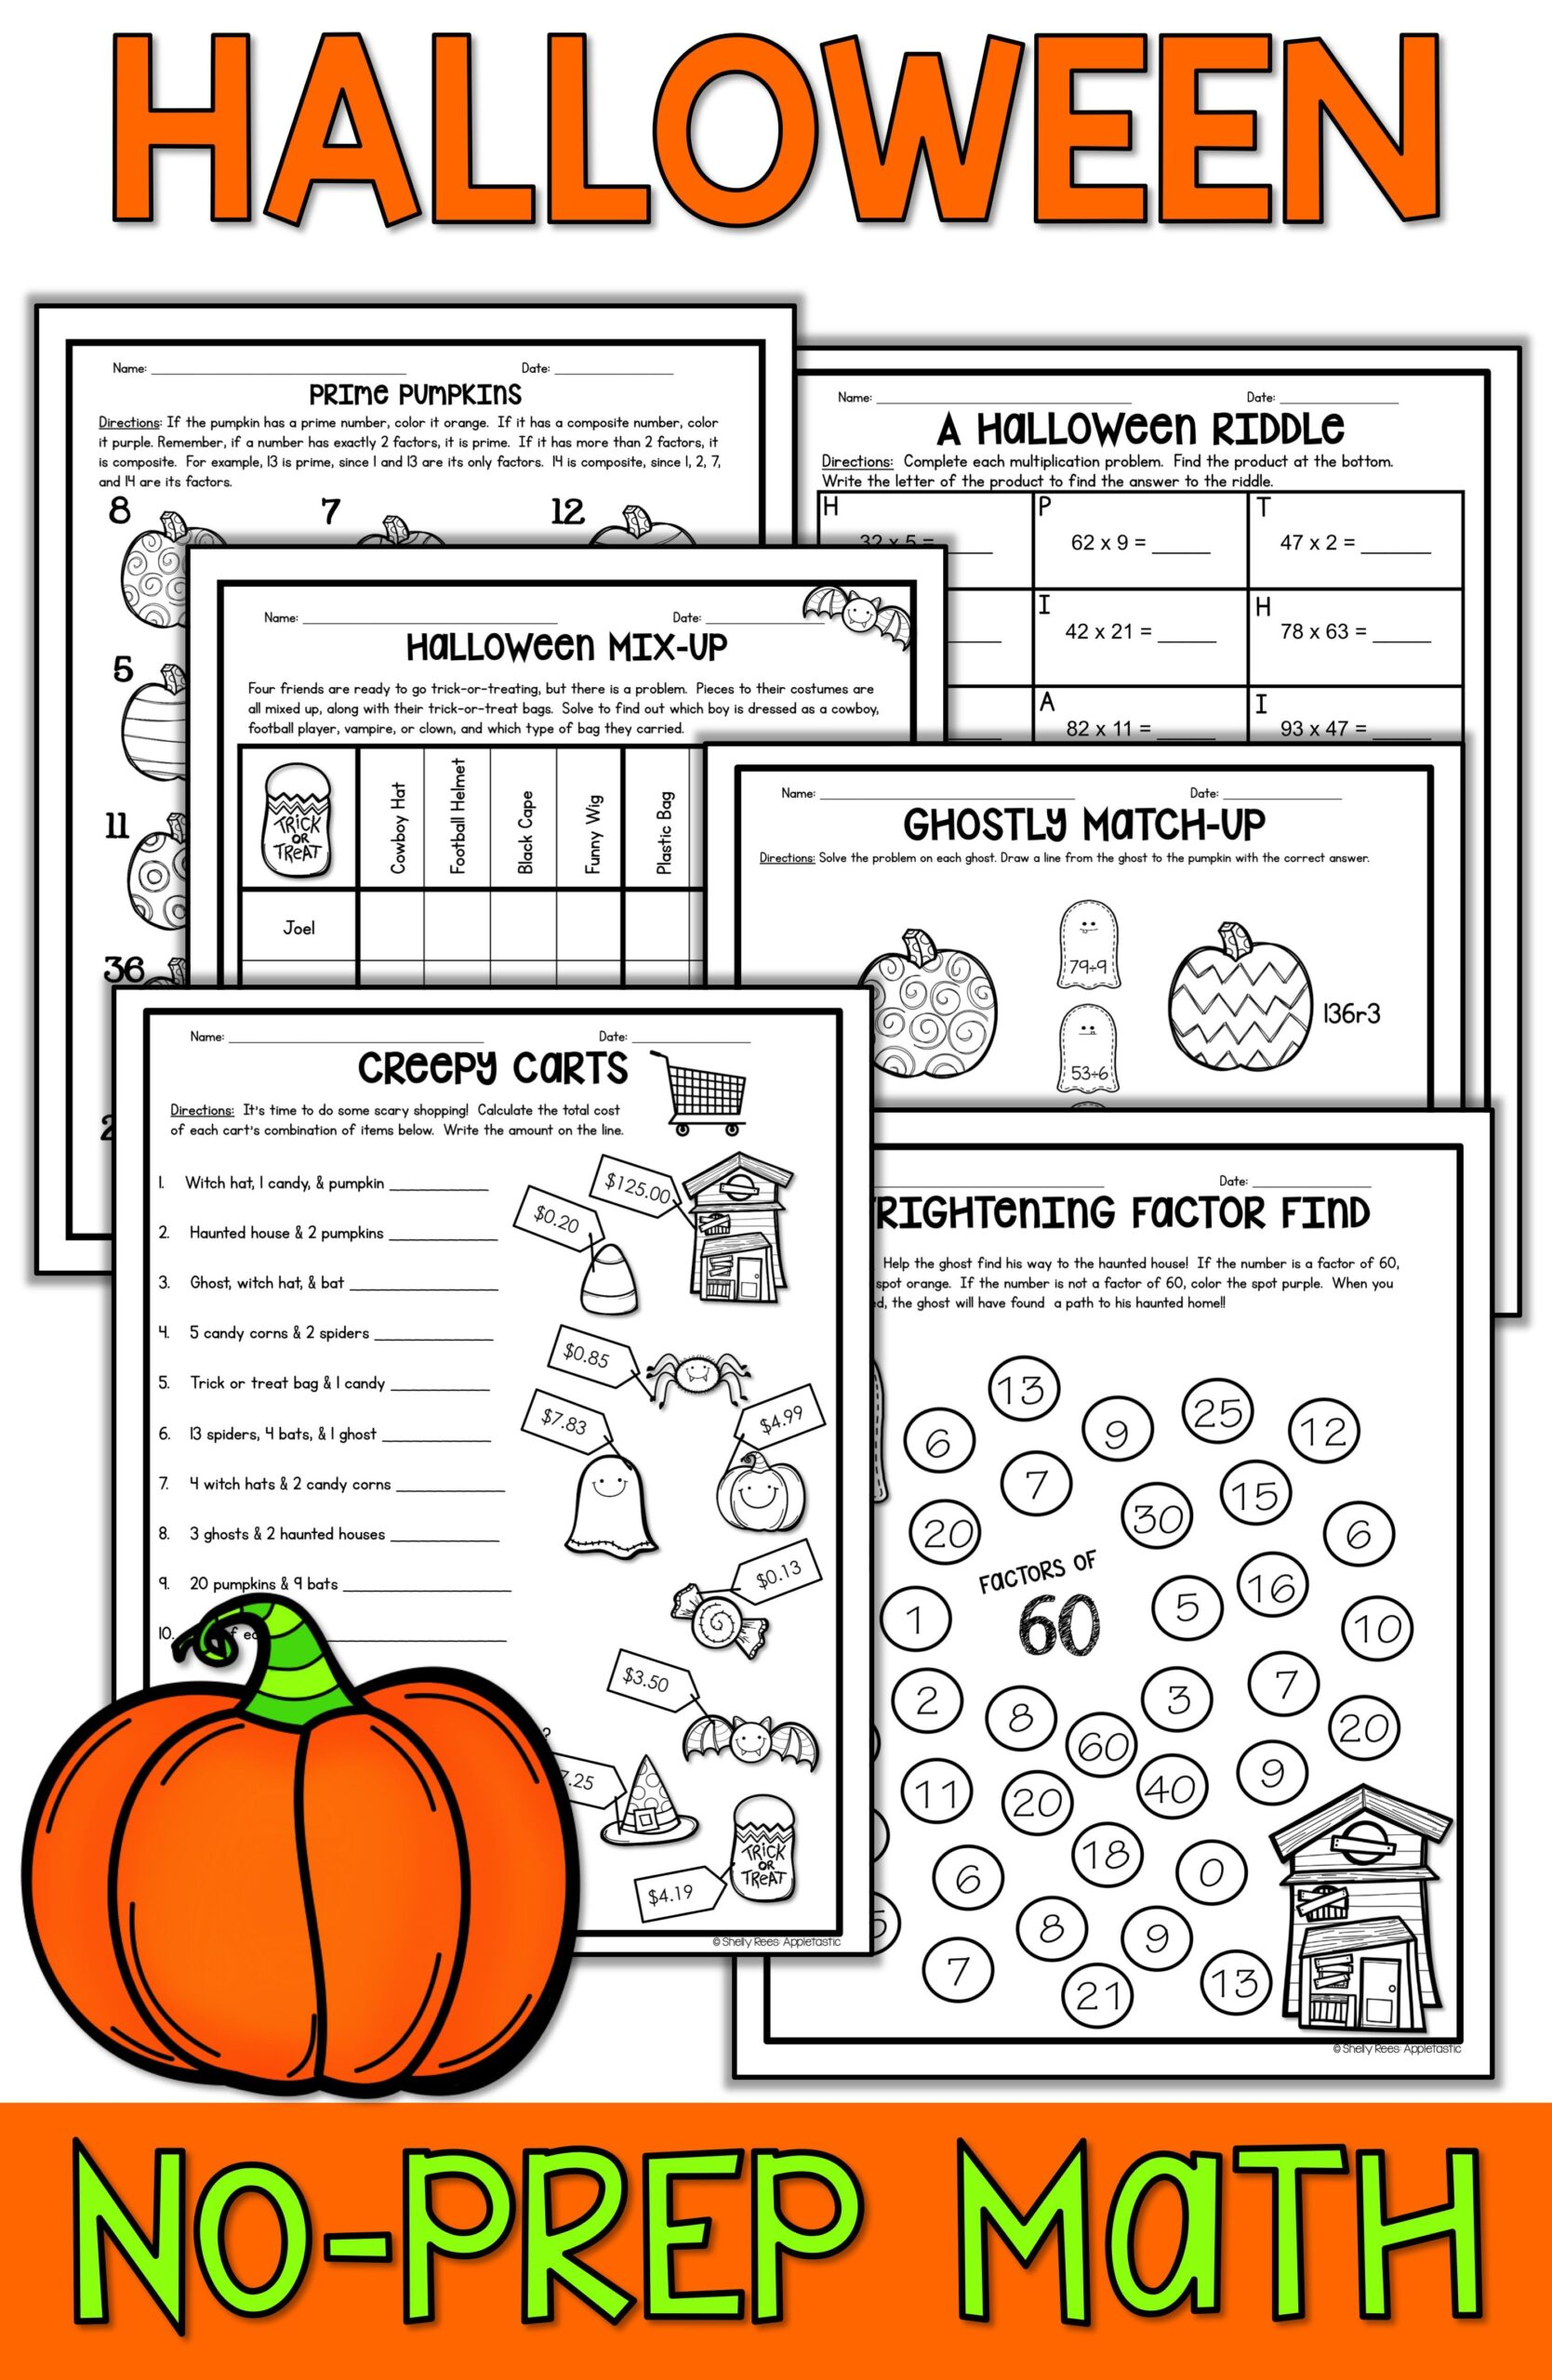 Halloween Mix Up Worksheet Answer Key